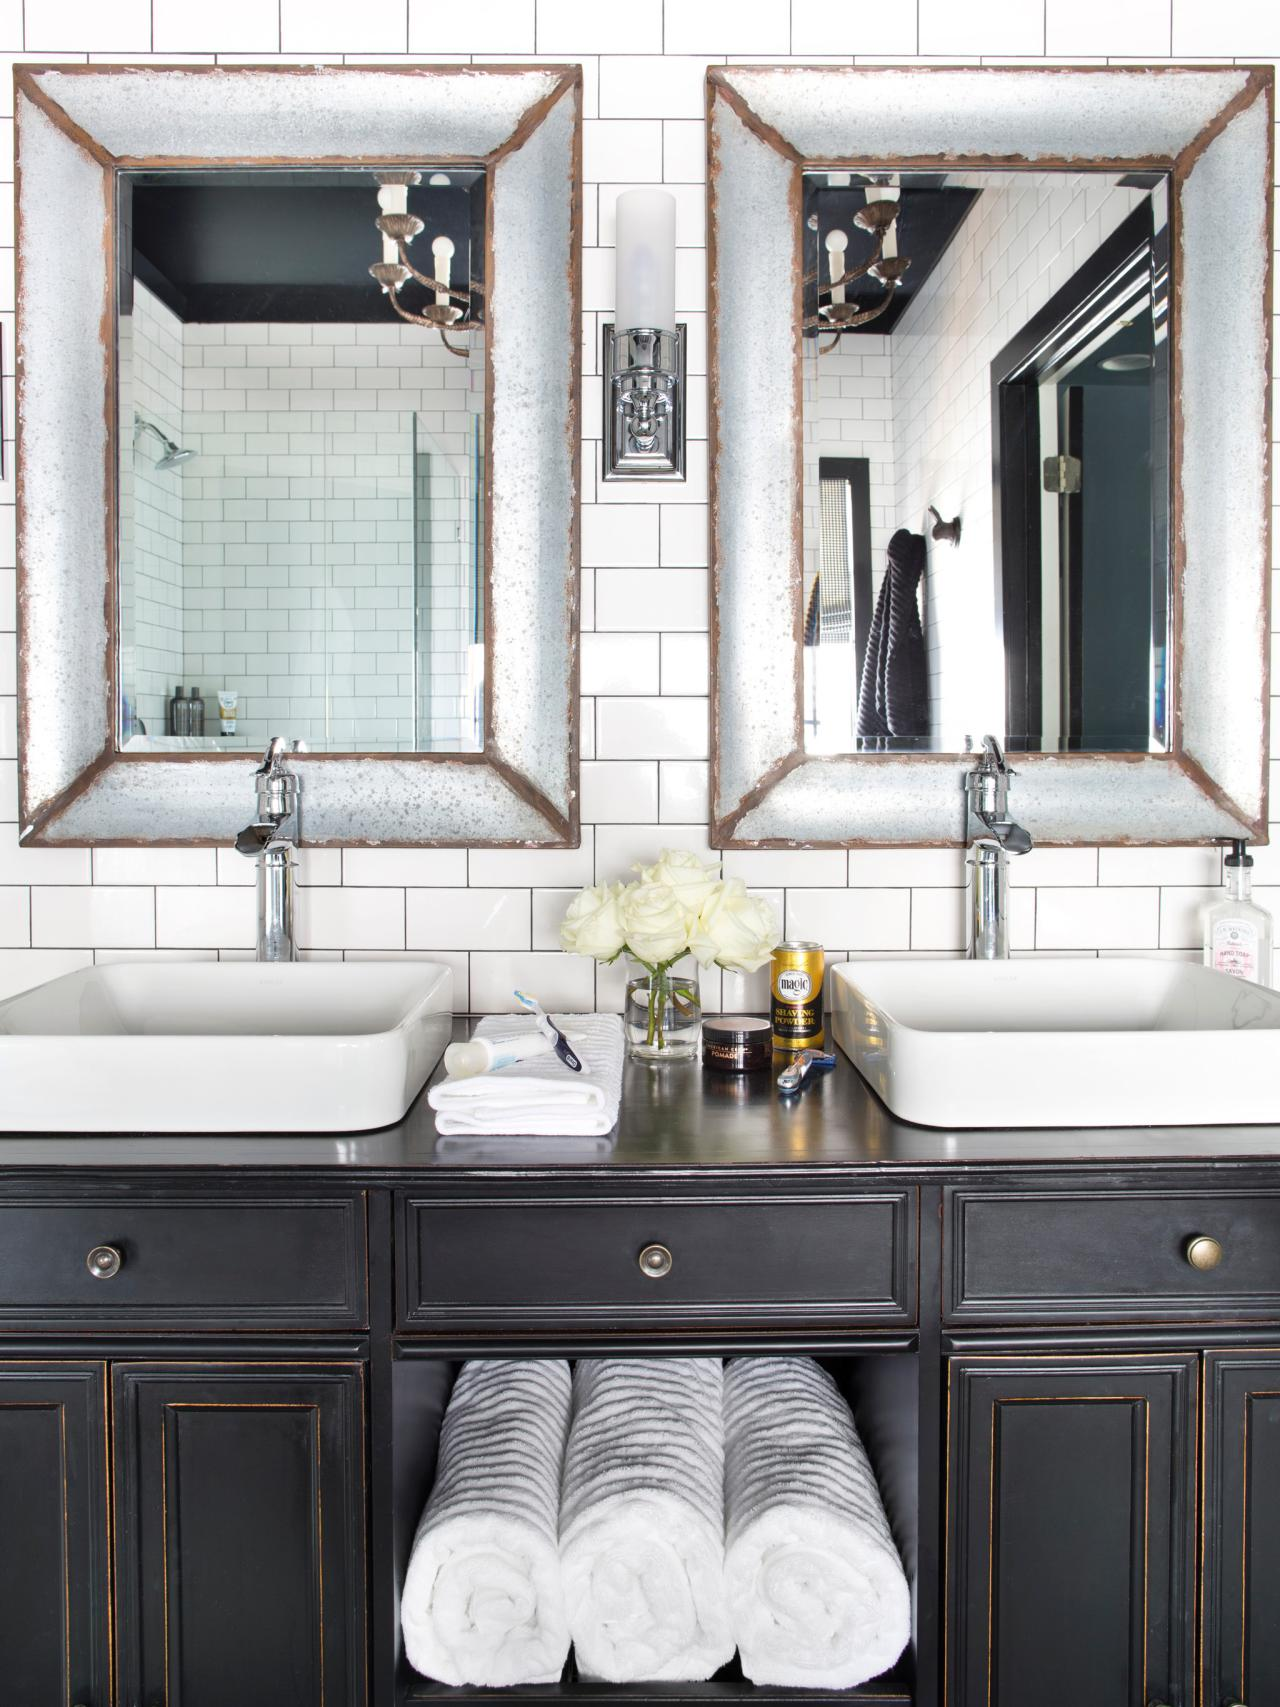 Black and White Bathroom s